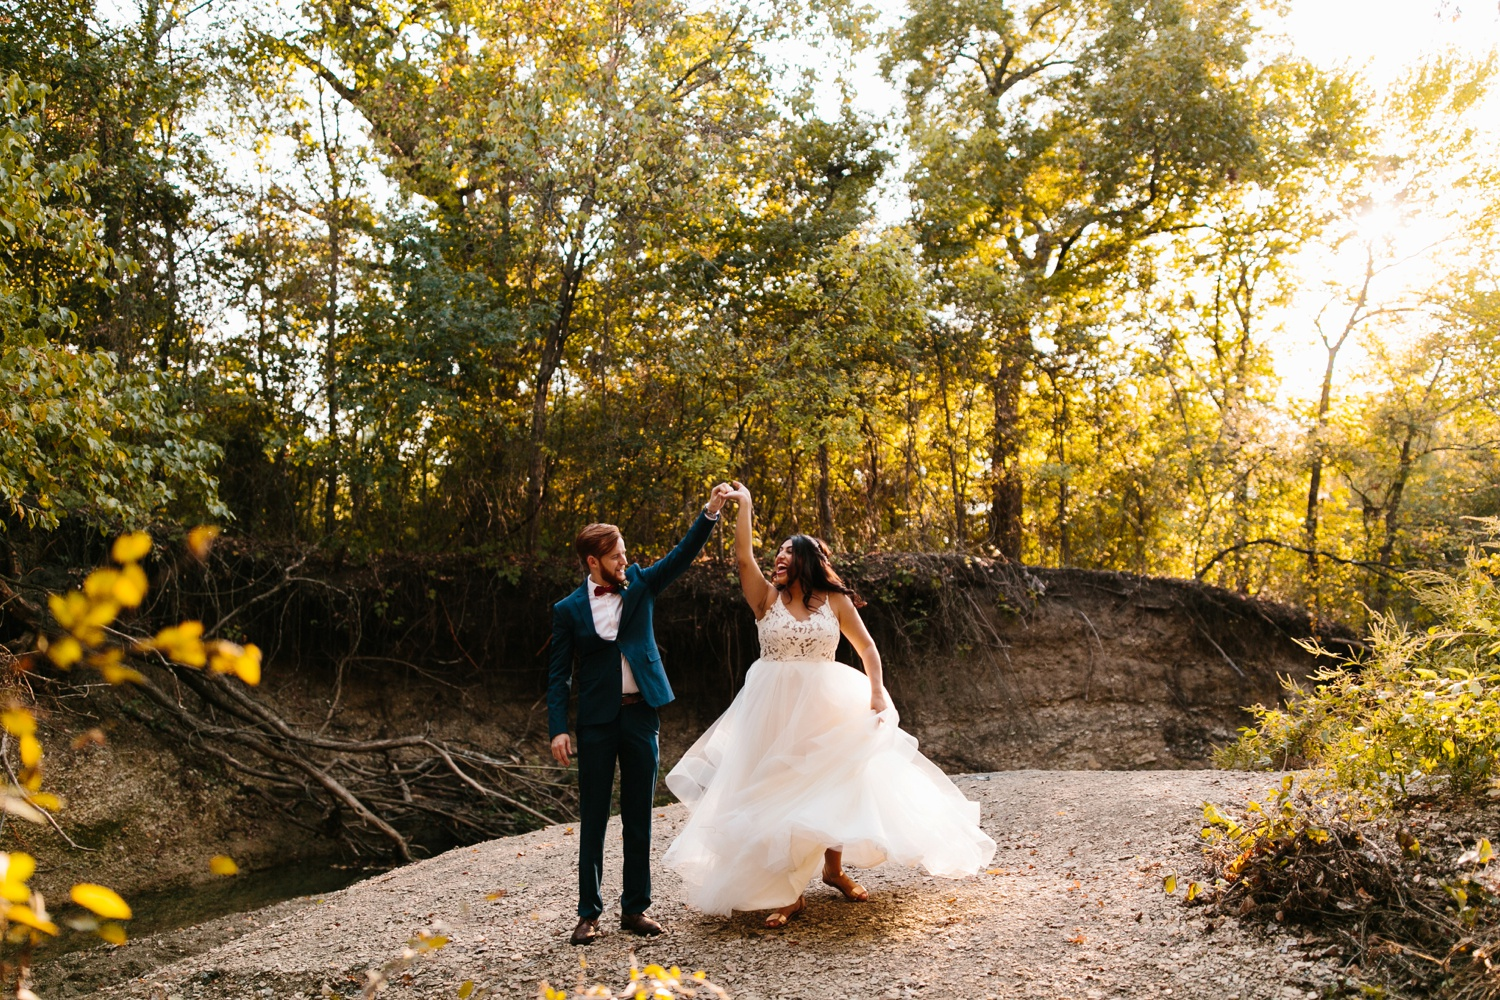 Grant + Lysette | a vibrant, deep burgundy and navy, and mixed metals wedding at Hidden Pines Chapel by North Texas Wedding Photographer Rachel Meagan Photography 197